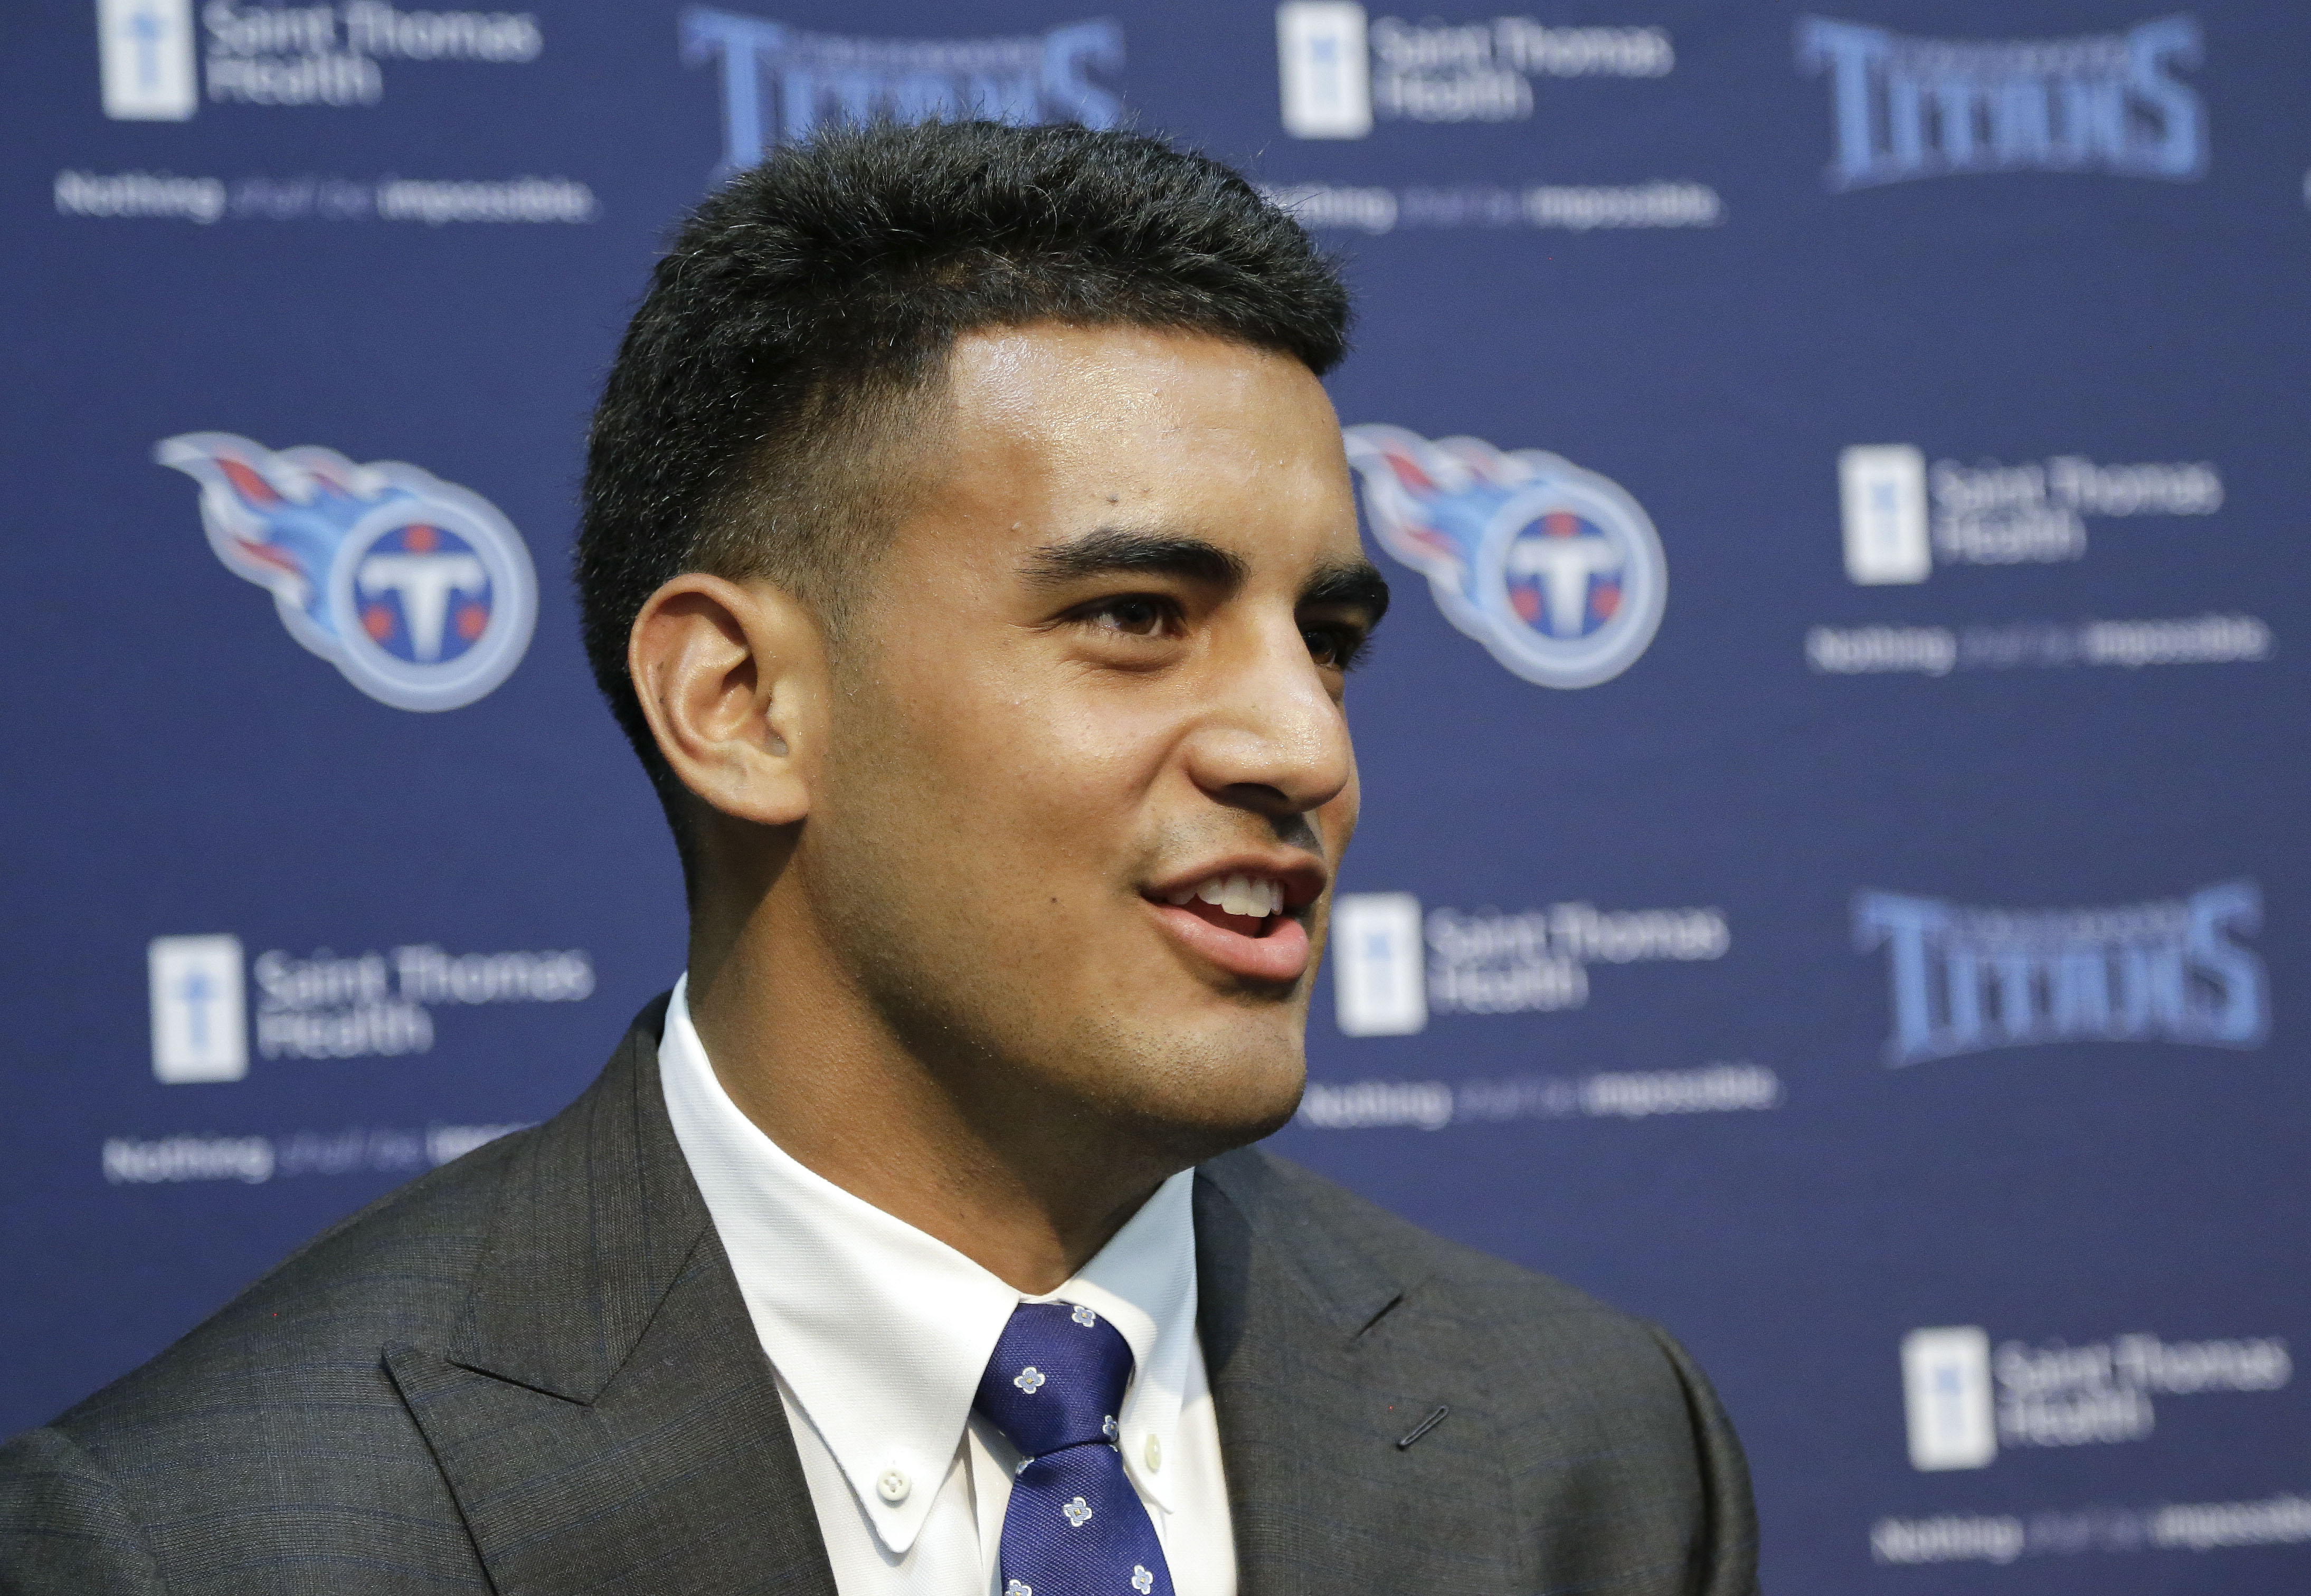 FILE - In this May 1, 2015, file photo, Marcus Mariota, selected second at the NFL Draft by the Tennessee Titans, answers questions during a news conference in Nashville, Tenn. Jameis Winston and Mariota became the sixth pair of quarterbacks drafted 1-2 o